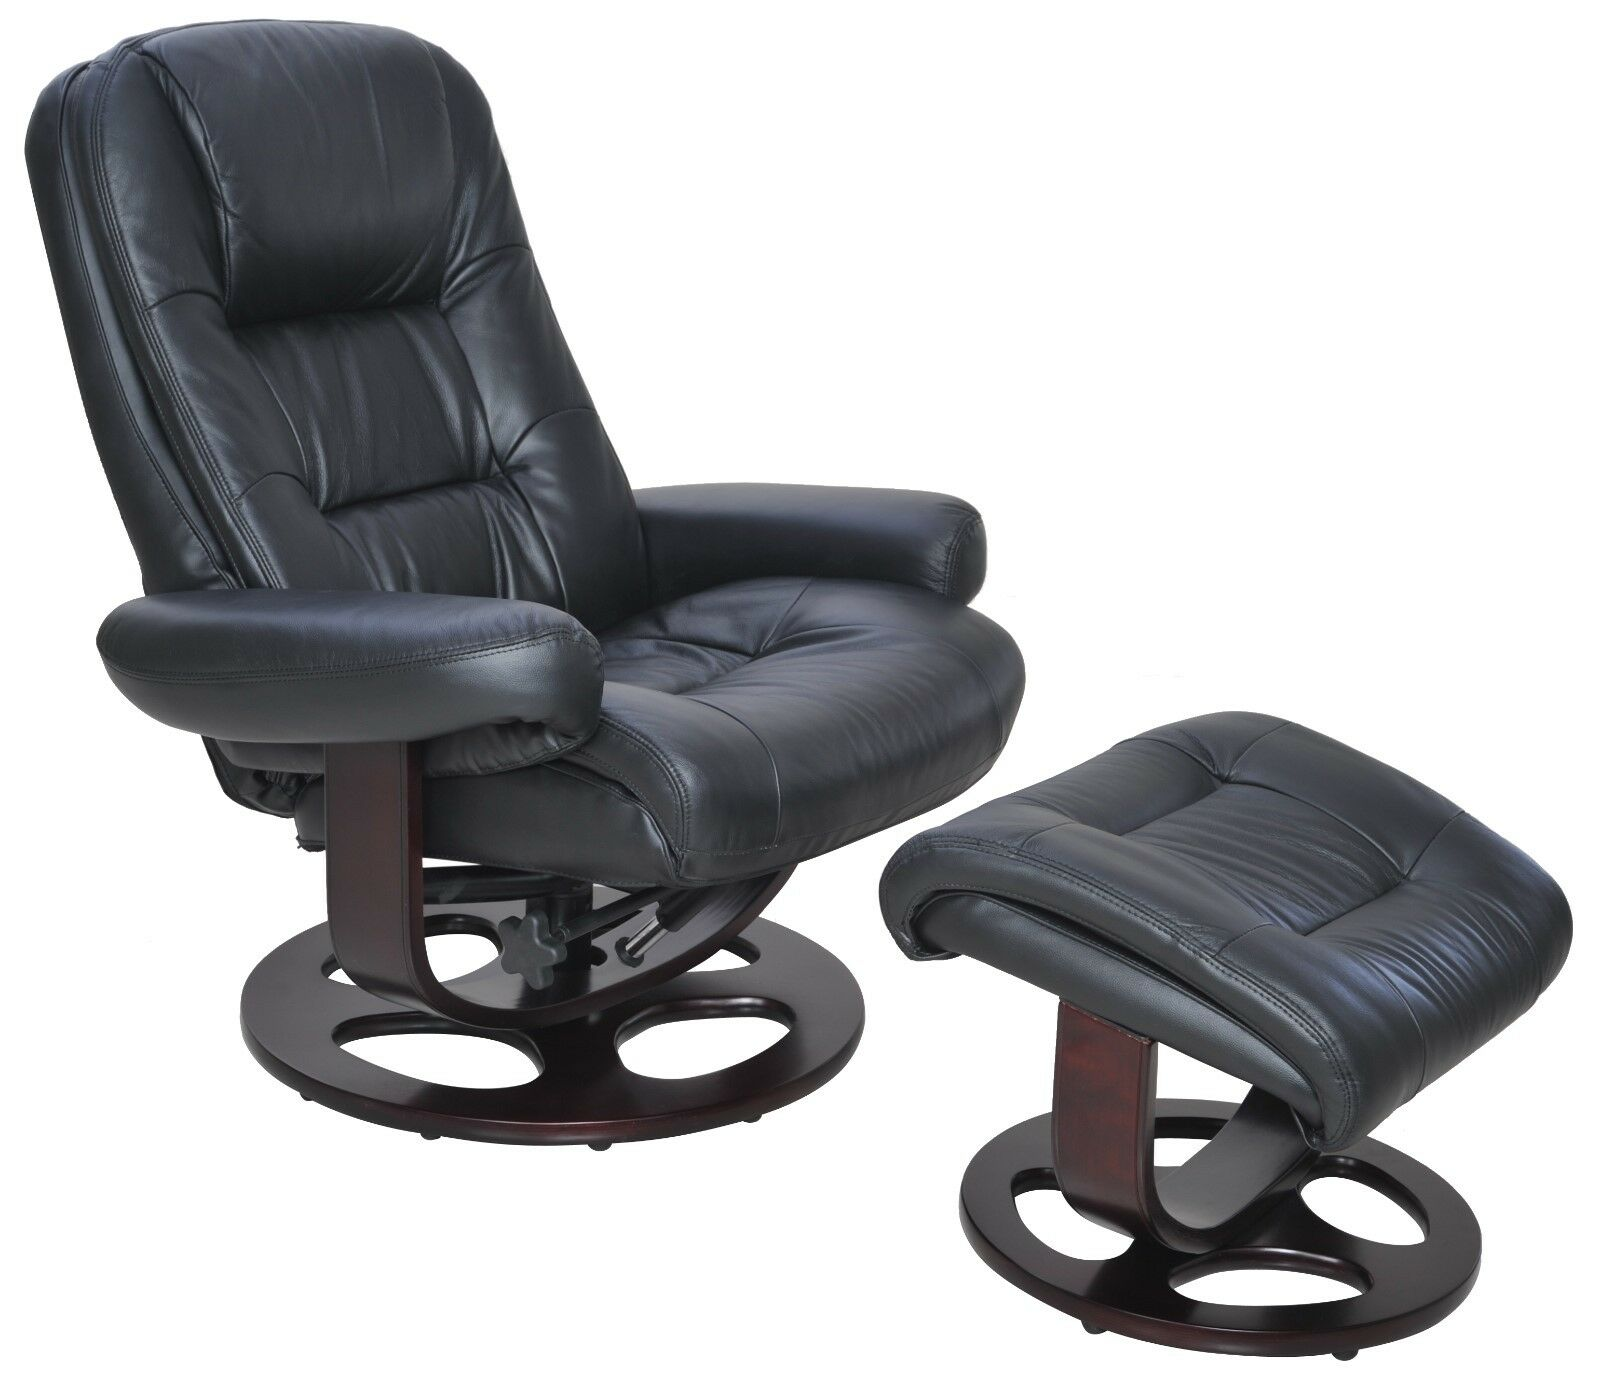 Barcalounger Jacque II Genuine Black Hilton Leather Recliner